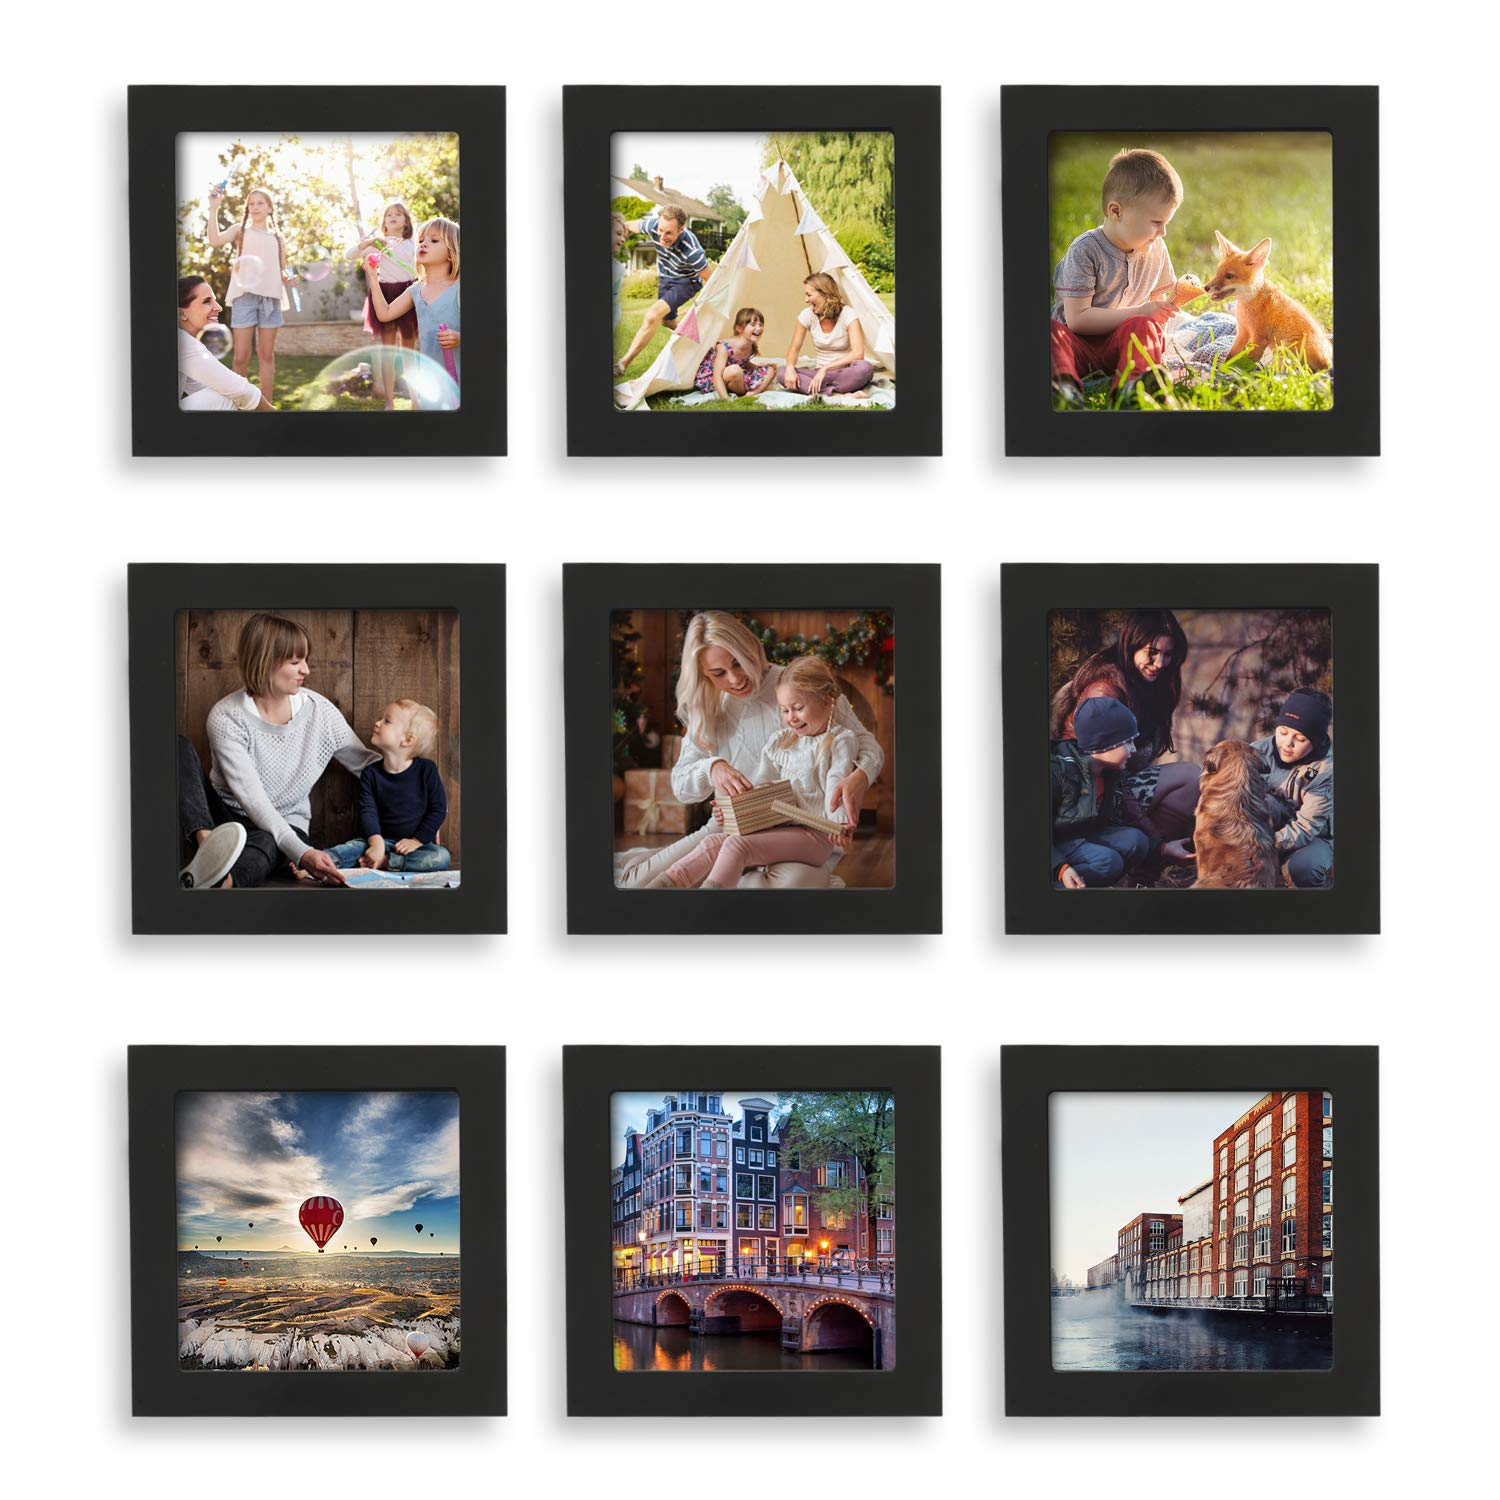 Home Margo, 4x4 Frames, Black Picture Frame Instagram Photo Collage Frame, Set of 9, 4 Inch Square Small Picture Frames by Home Margo